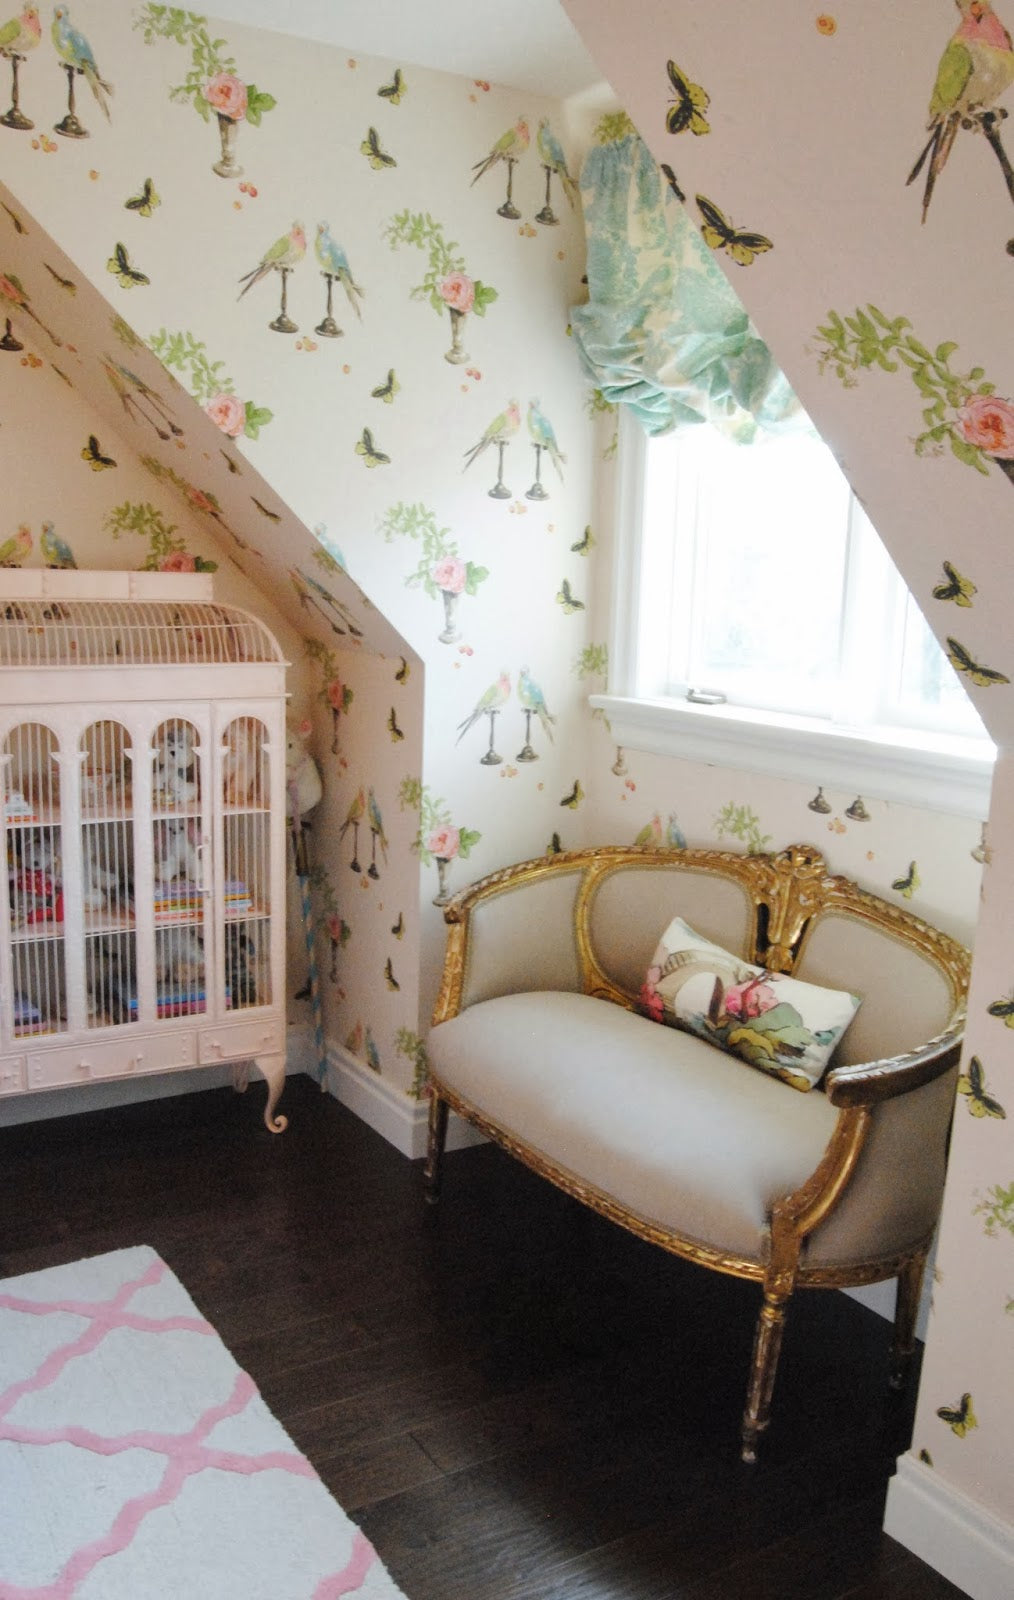 girls room gilt settee in window alcove with bird cage